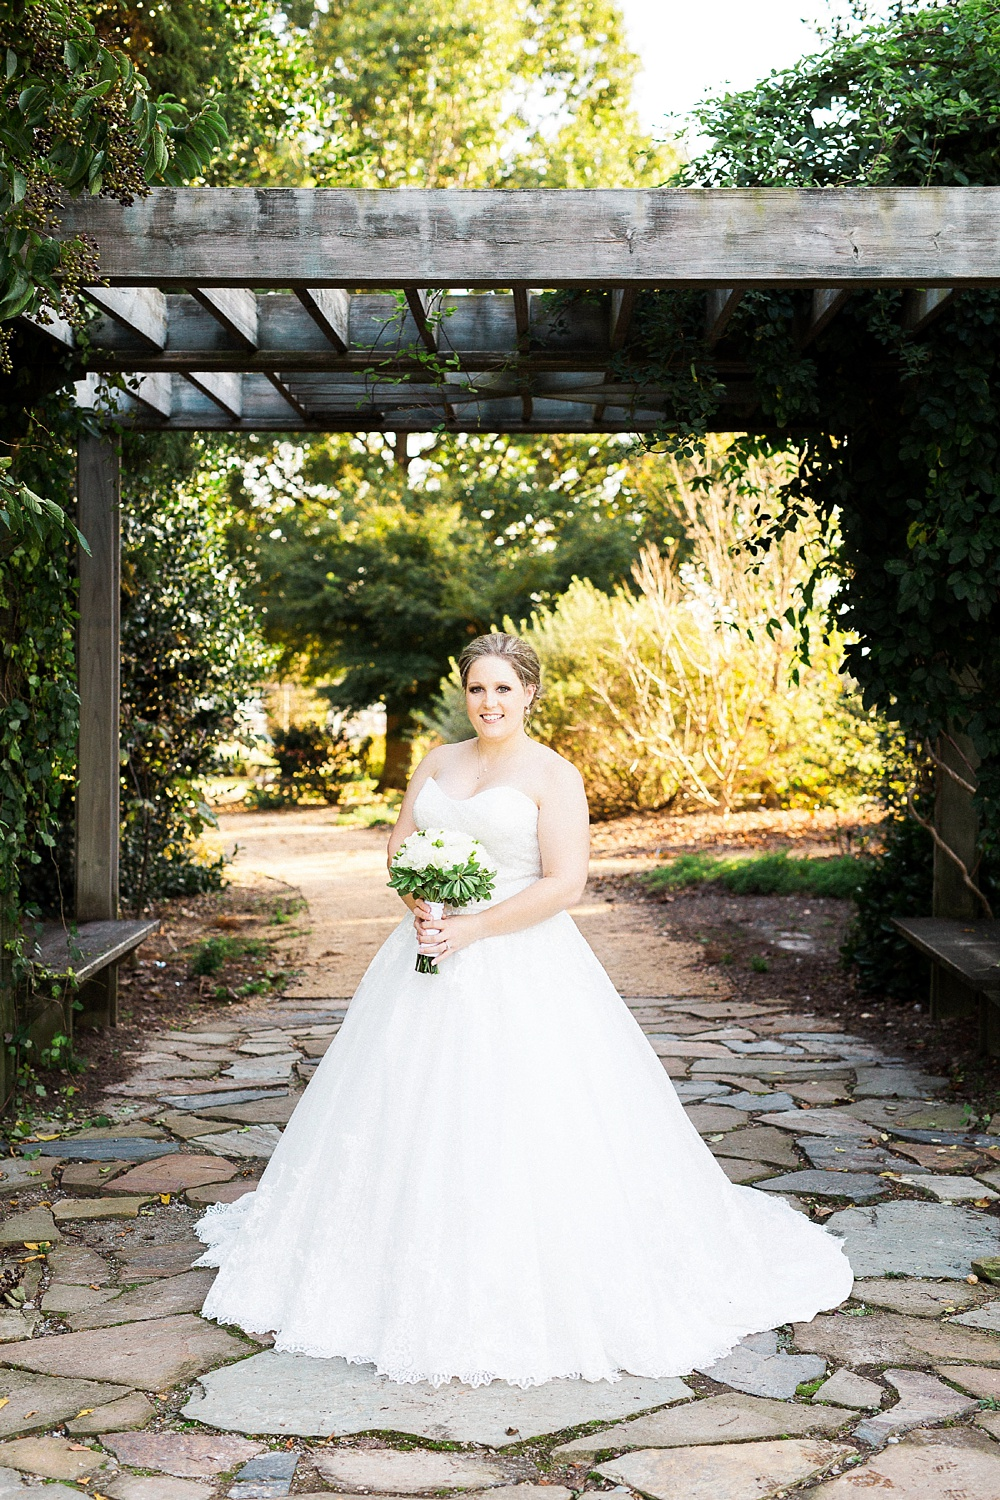 Rachael Bowman Photography-JC Raulston Arboretum-Raleigh-NC-Bridal Session-Photographer-Photos_0001.jpg